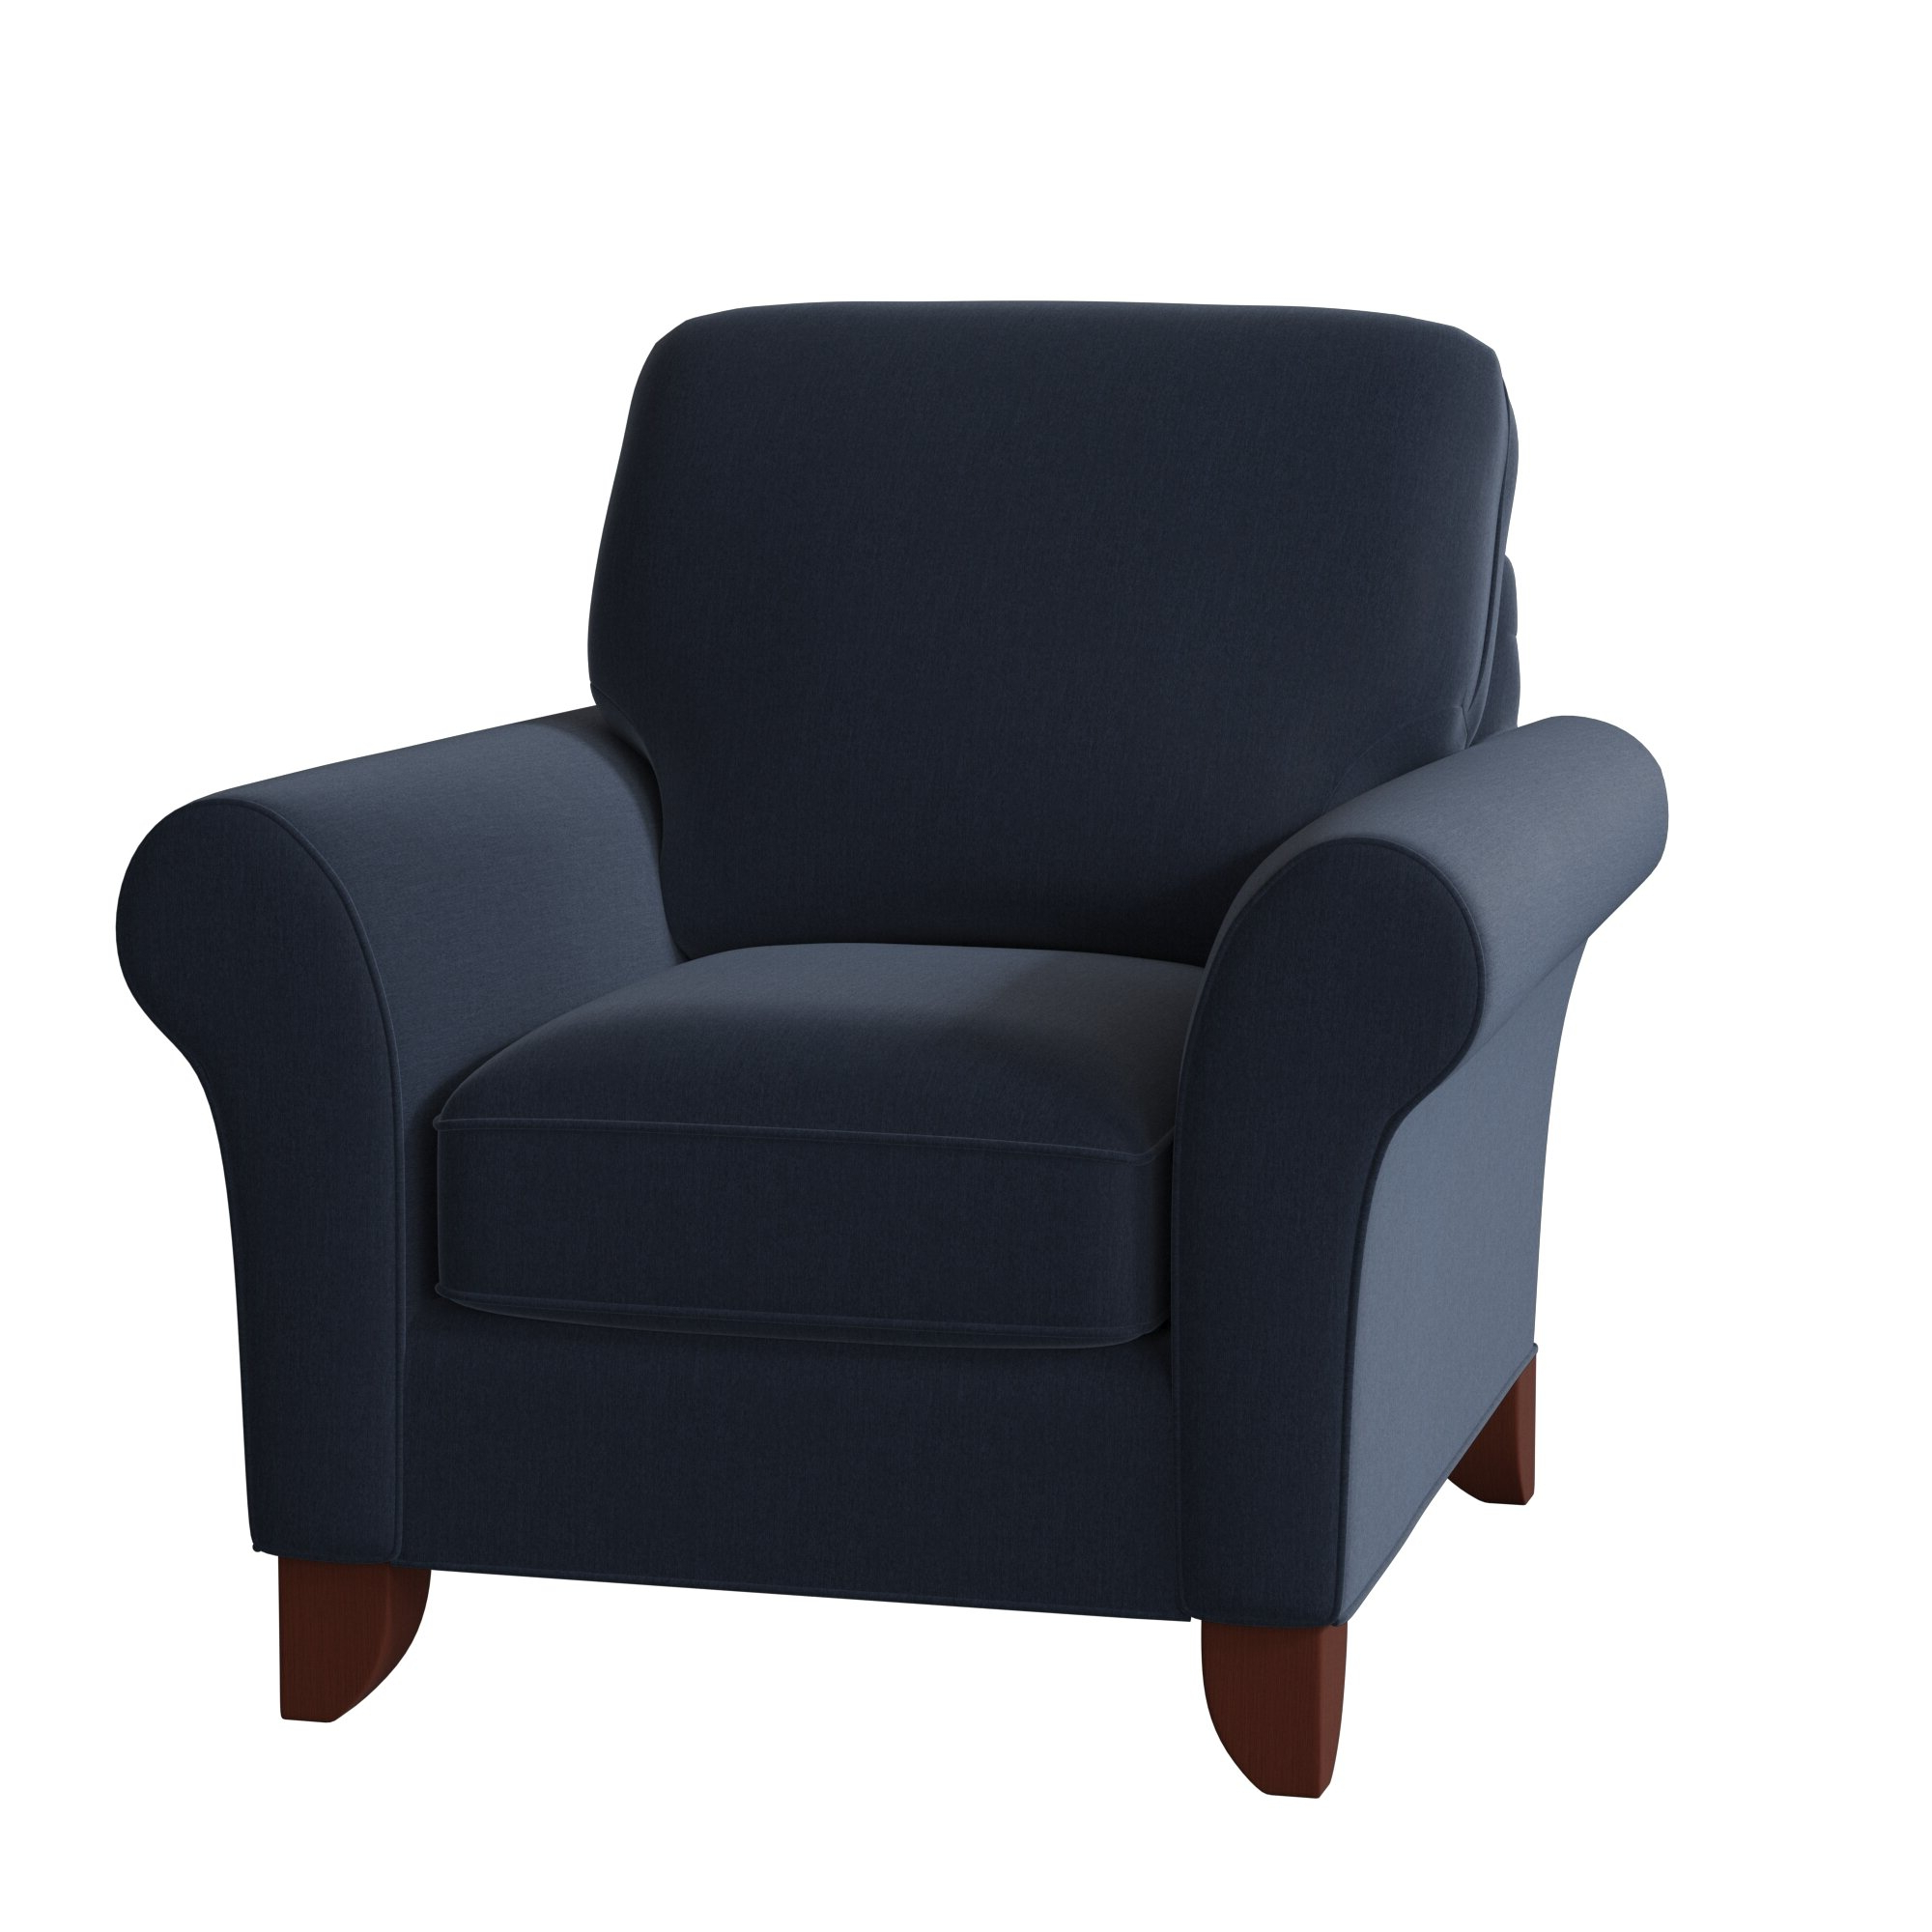 Well Known Almada Armchair With Regard To Almada Armchairs (View 3 of 20)